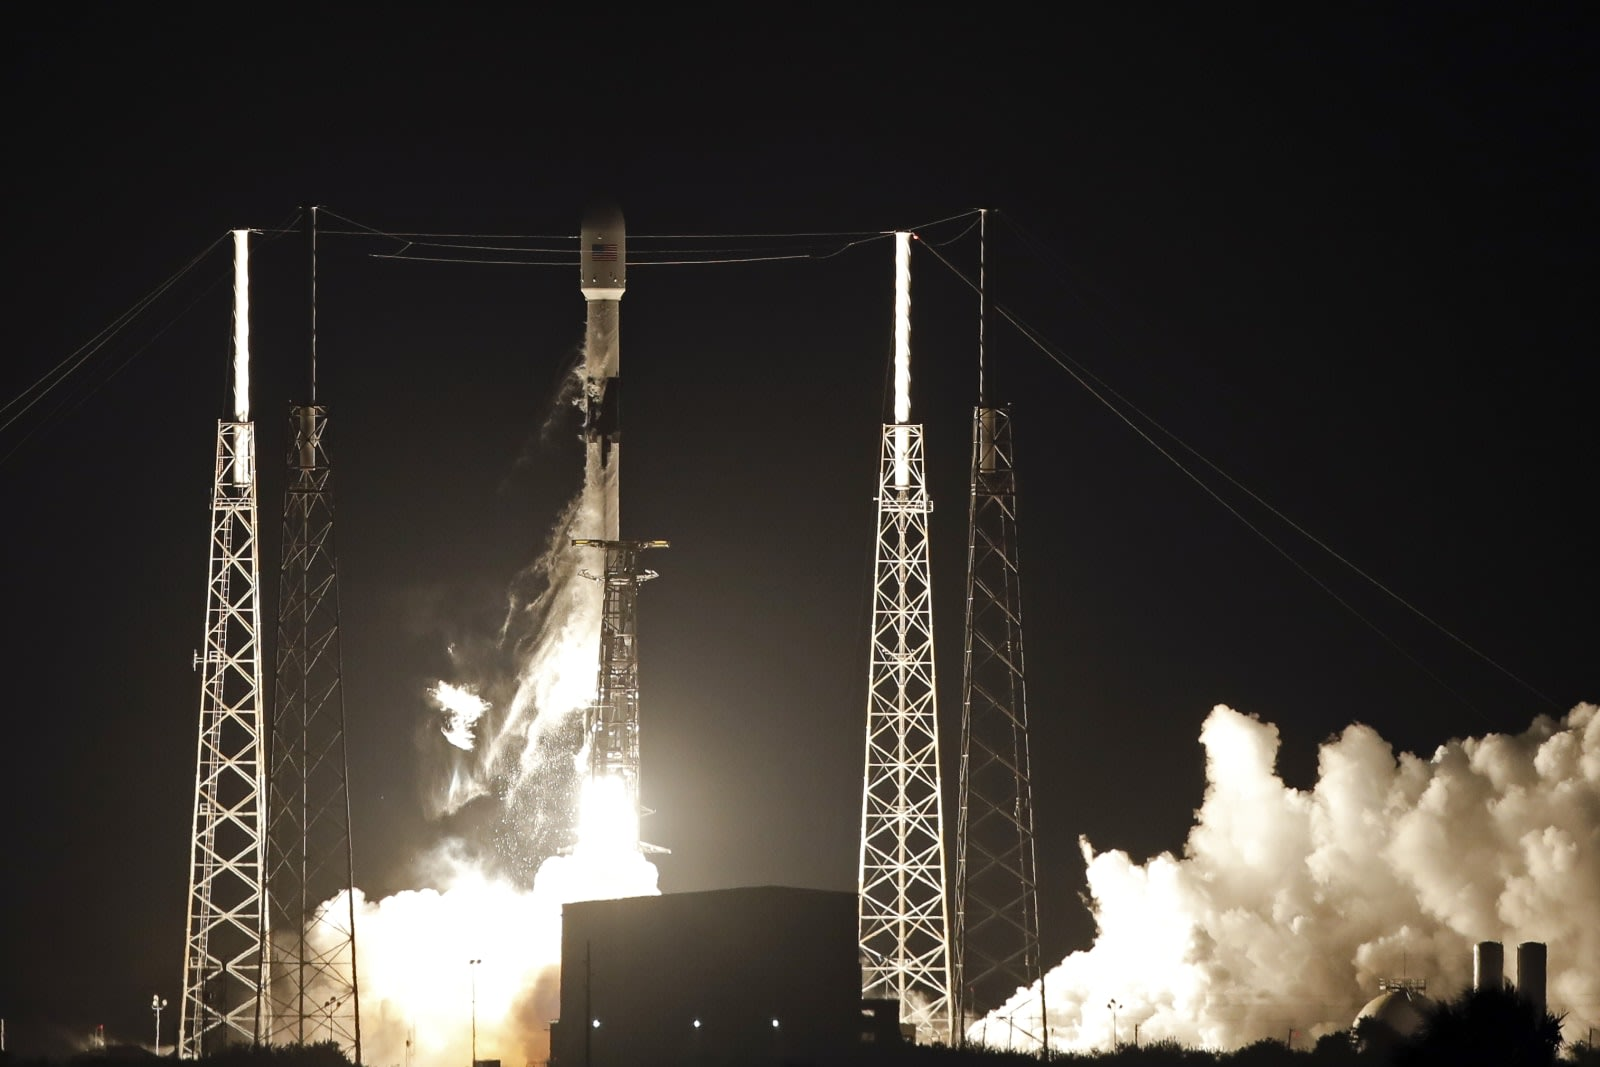 SpaceX hopes to offer satellite internet to customers by mid-2020